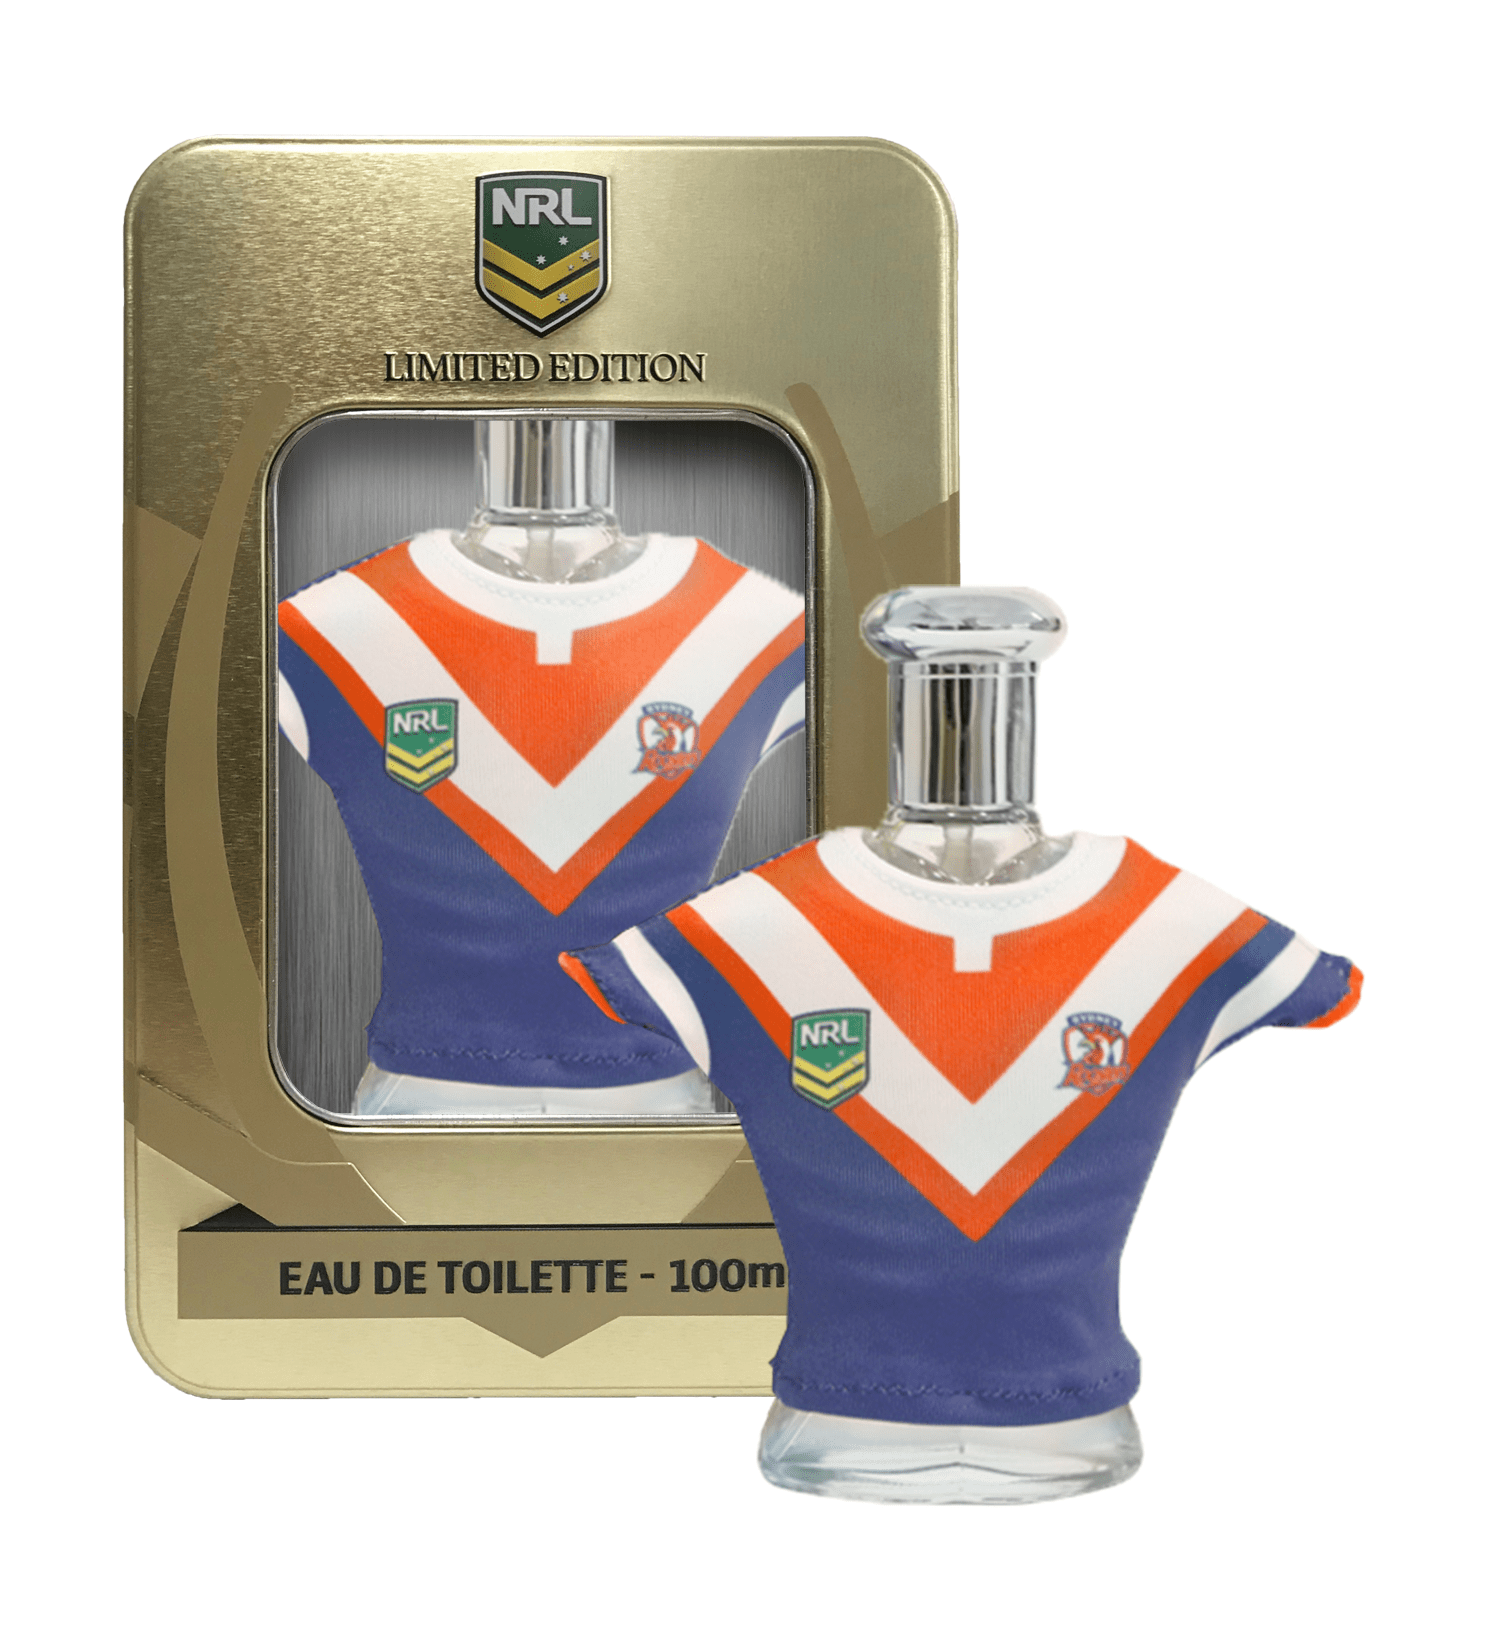 NRL Cologne Roosters